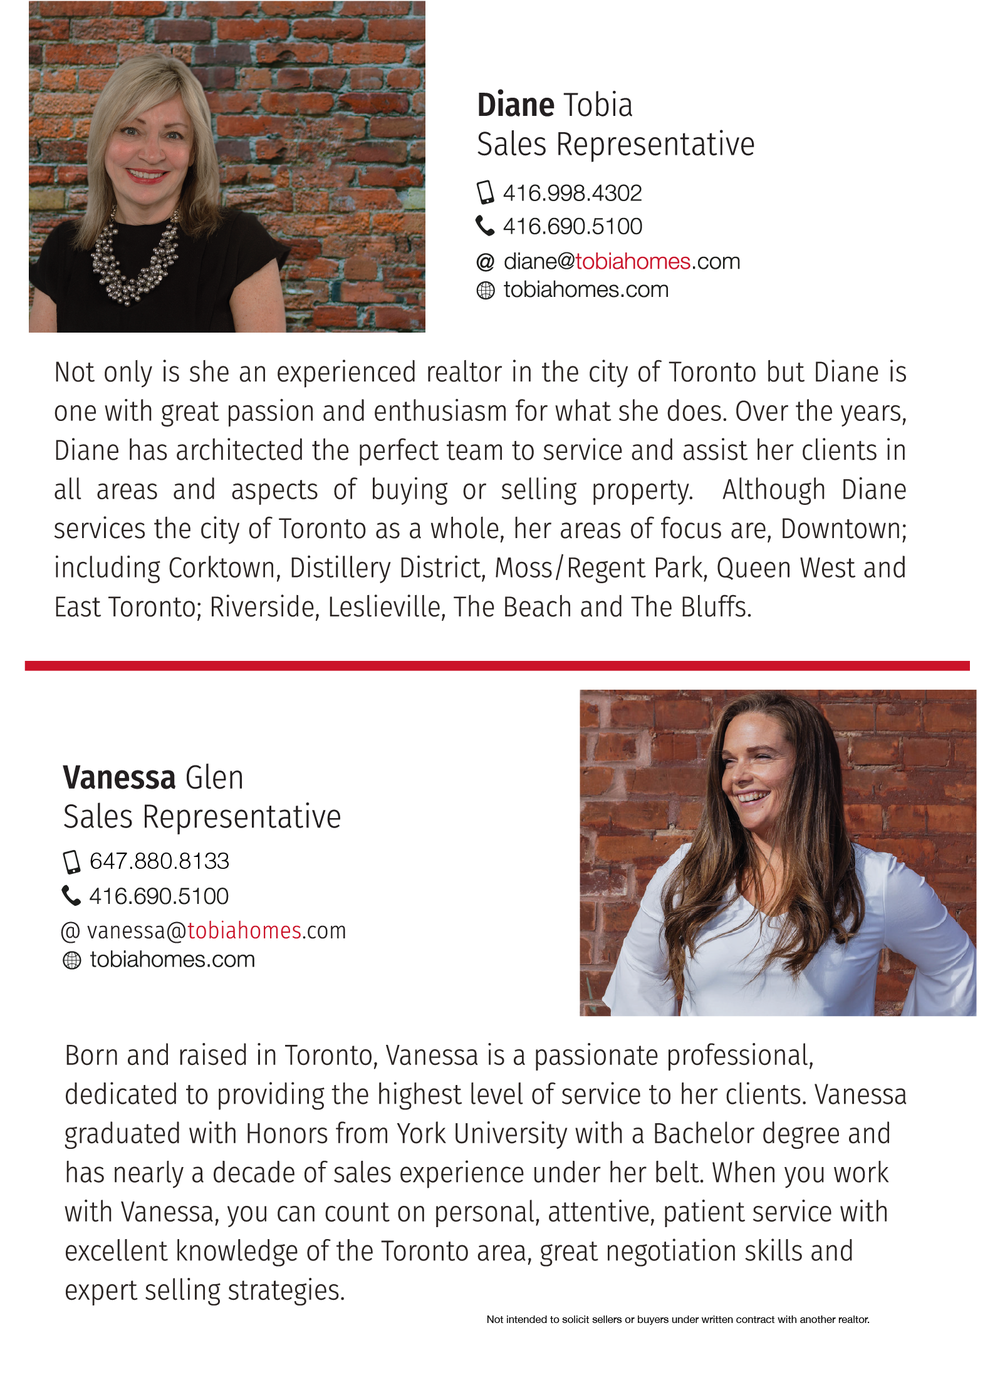 Tobia_Homes_Presentation-Digital_Download-0518_About Us.png